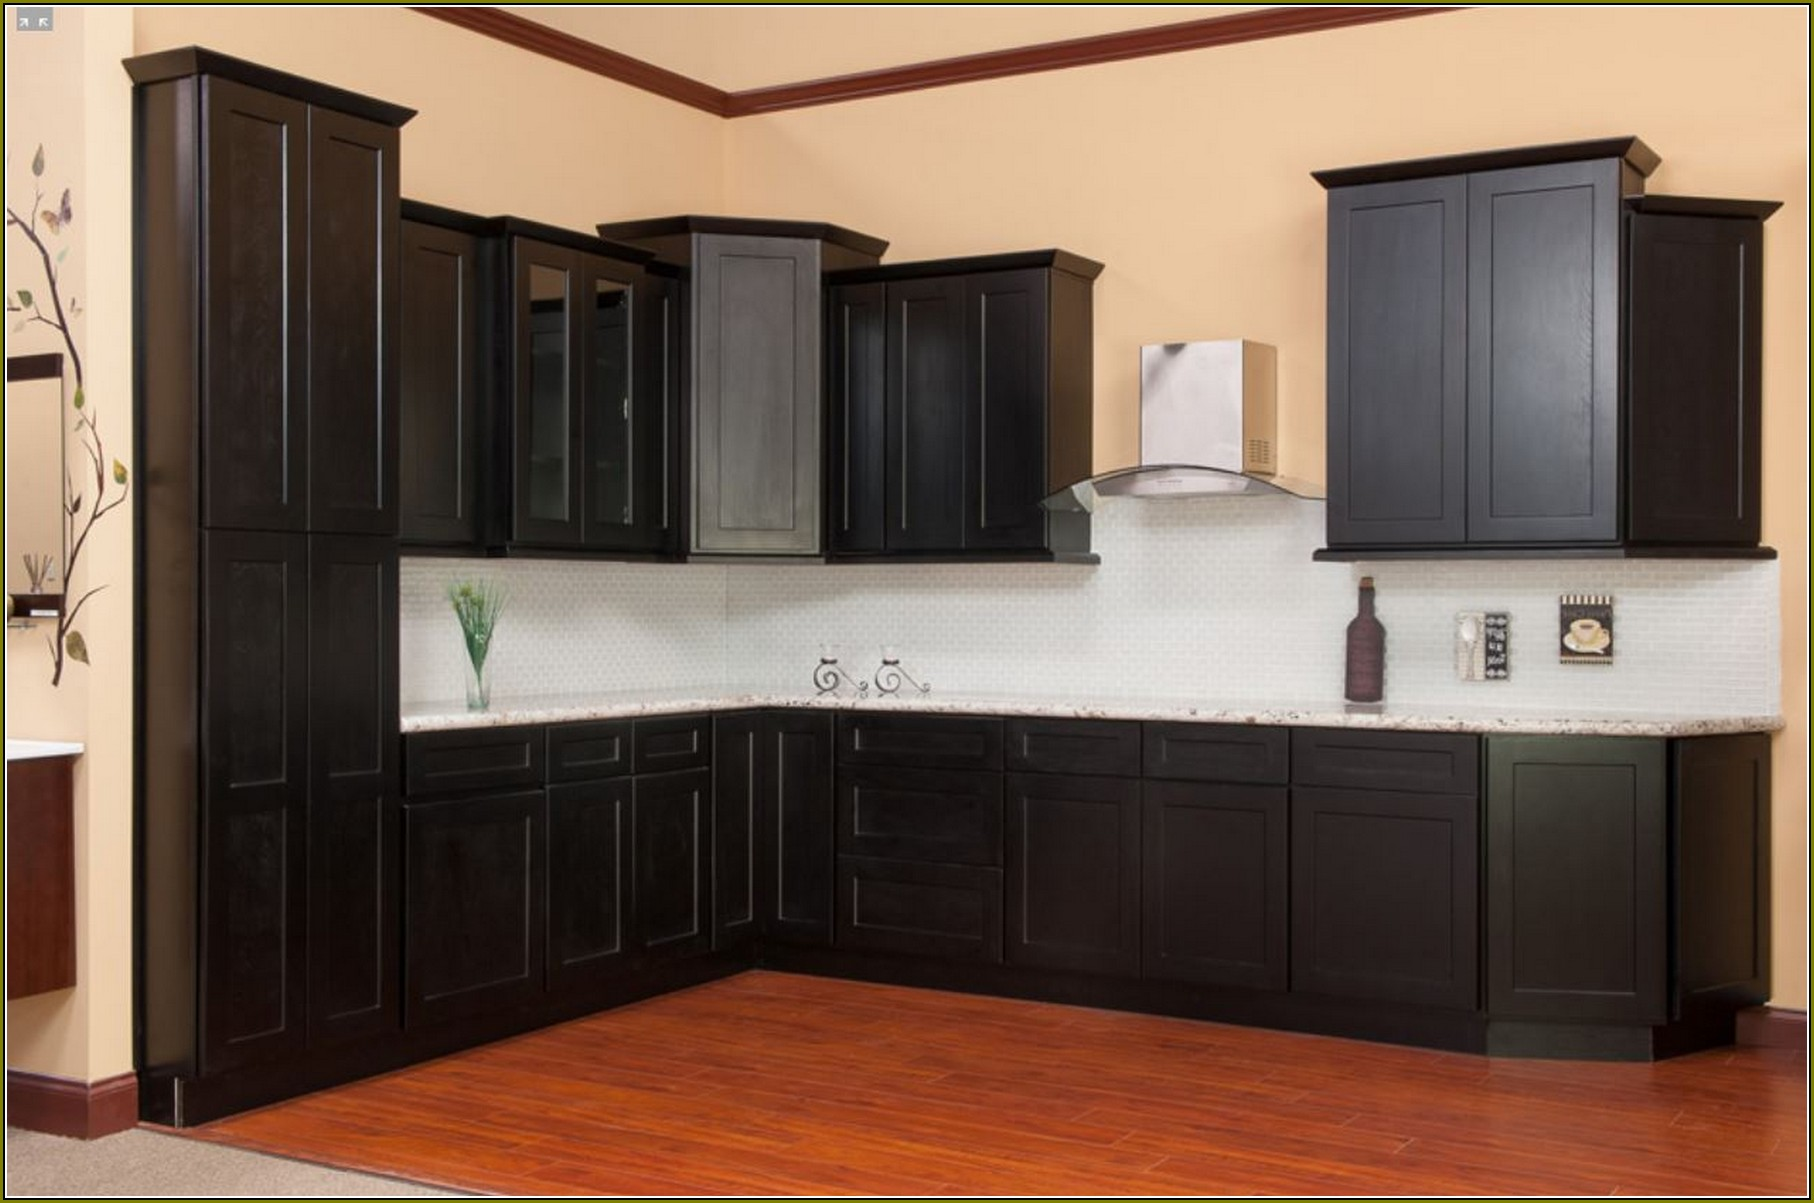 Popular assembled kitchen cabinets ... ready to assemble kitchen cabinets home depot home design ideas  unfinished ldnicko